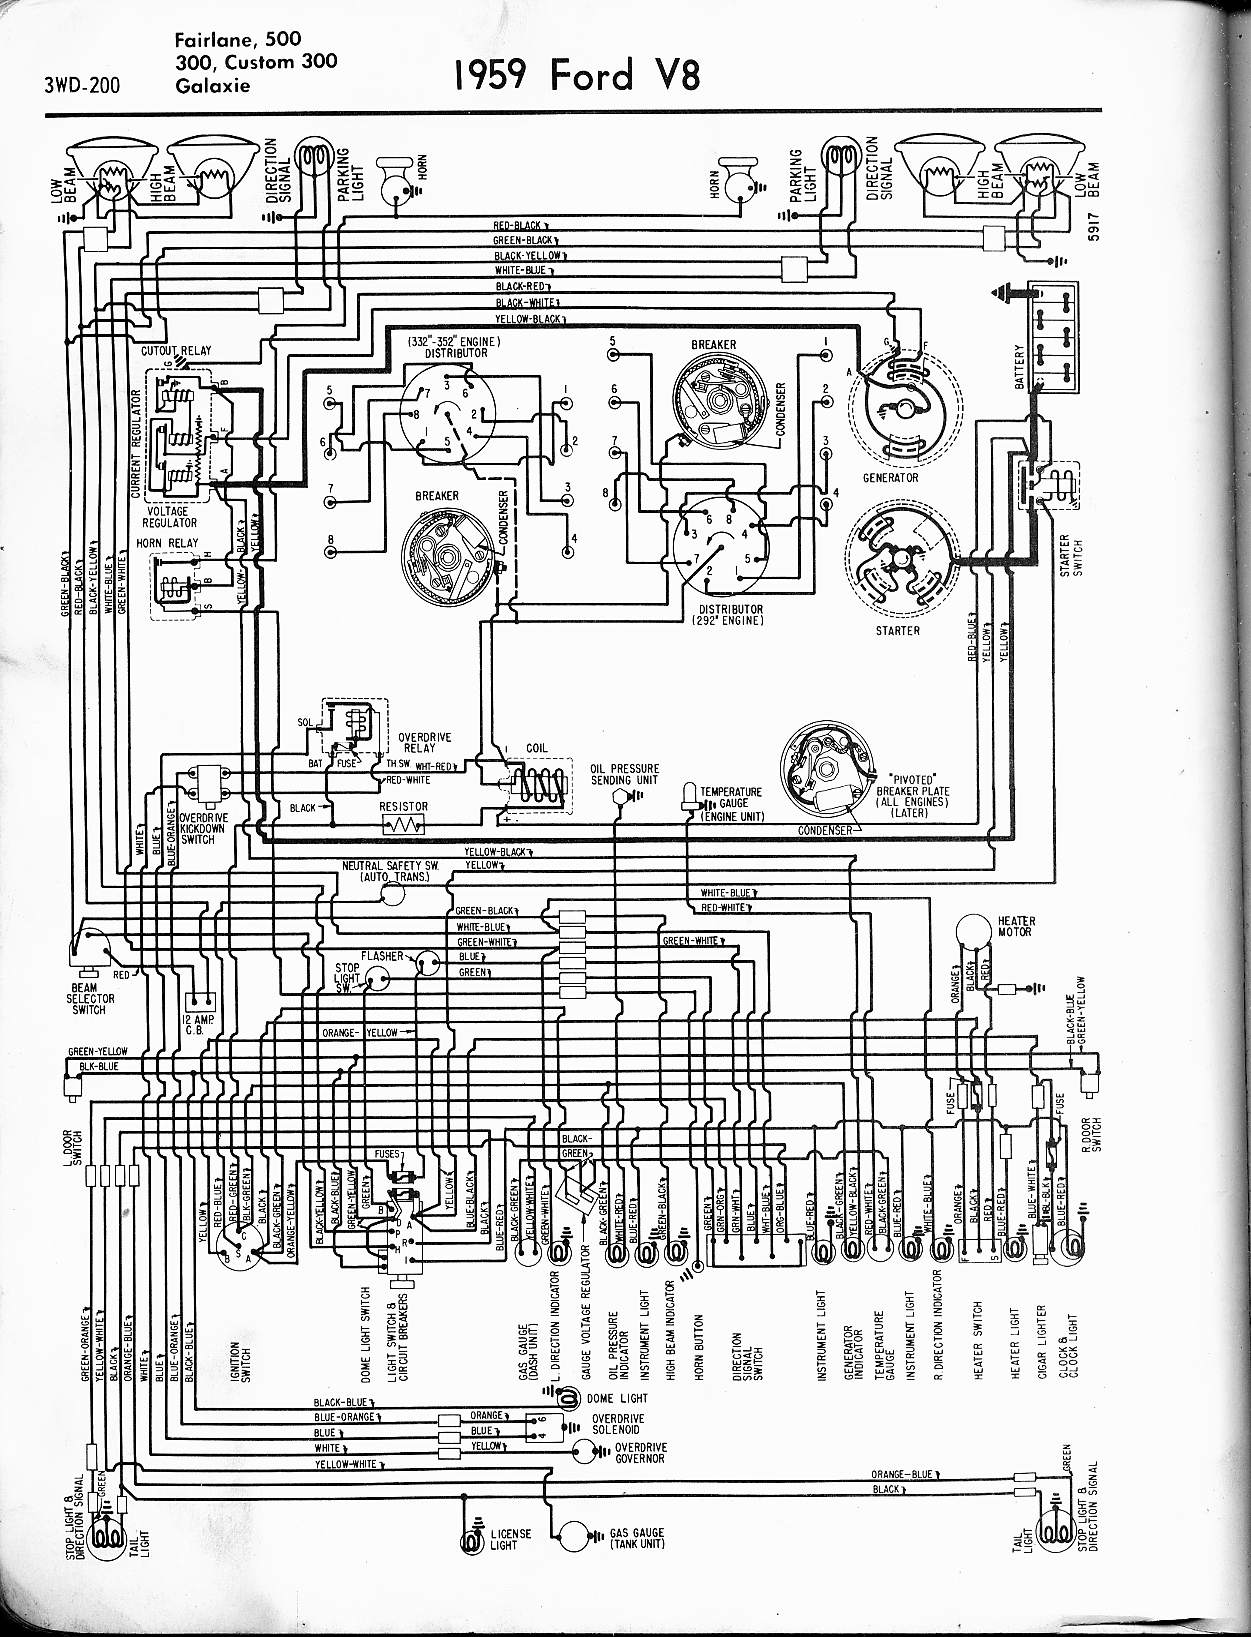 1959 ford fairlane wiring diagram wiring diagram rh 16 ennosbobbelparty1 de